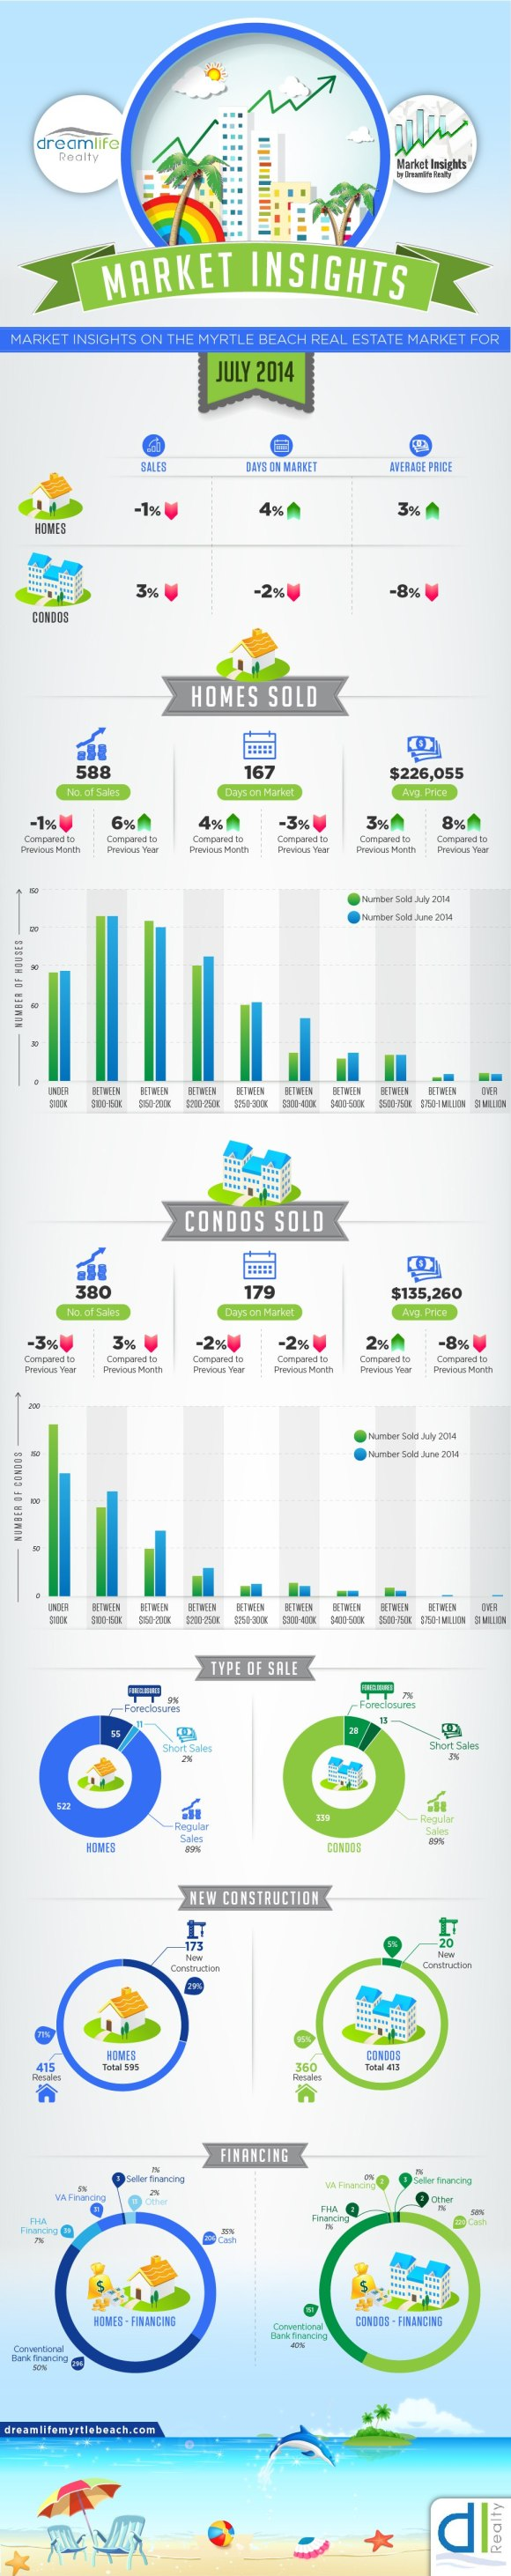 Myrtle Beach Real Estate market update for July 2014